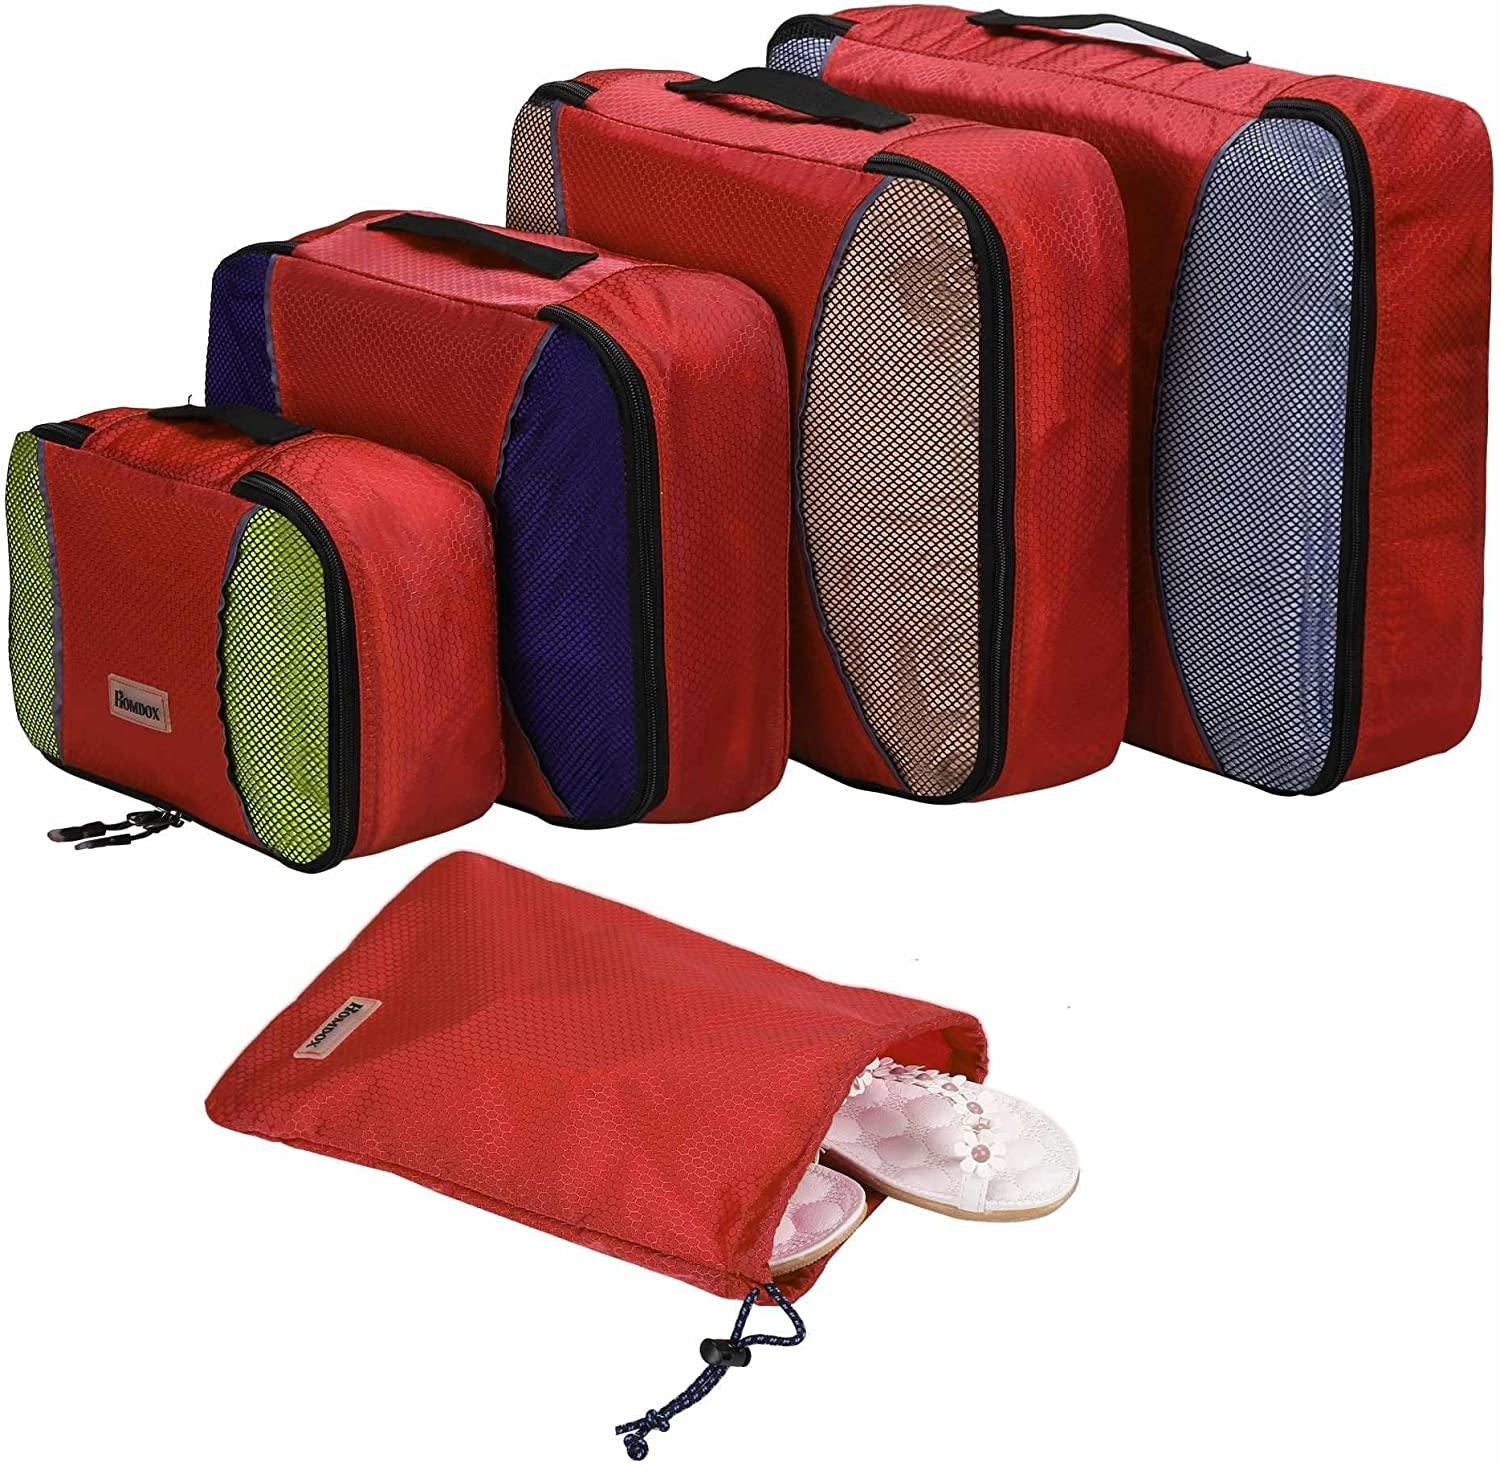 Carsget Packing Cube Set Packing Organizers